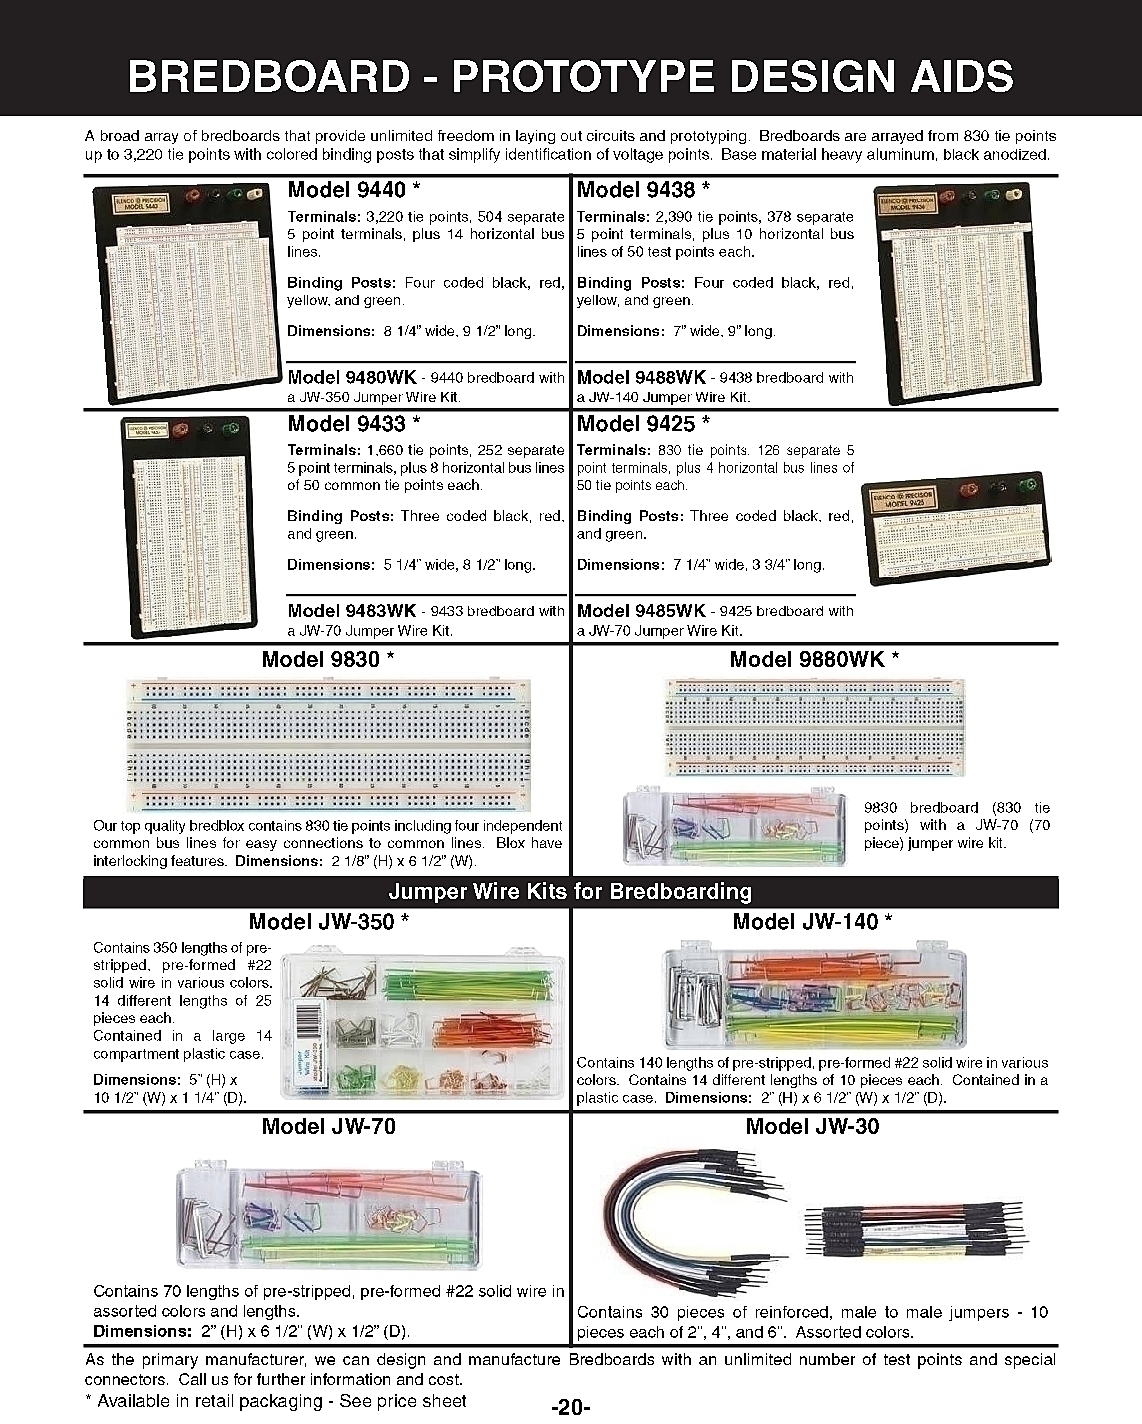 Learning: Supplies Educational Technology Computer Accessories ...